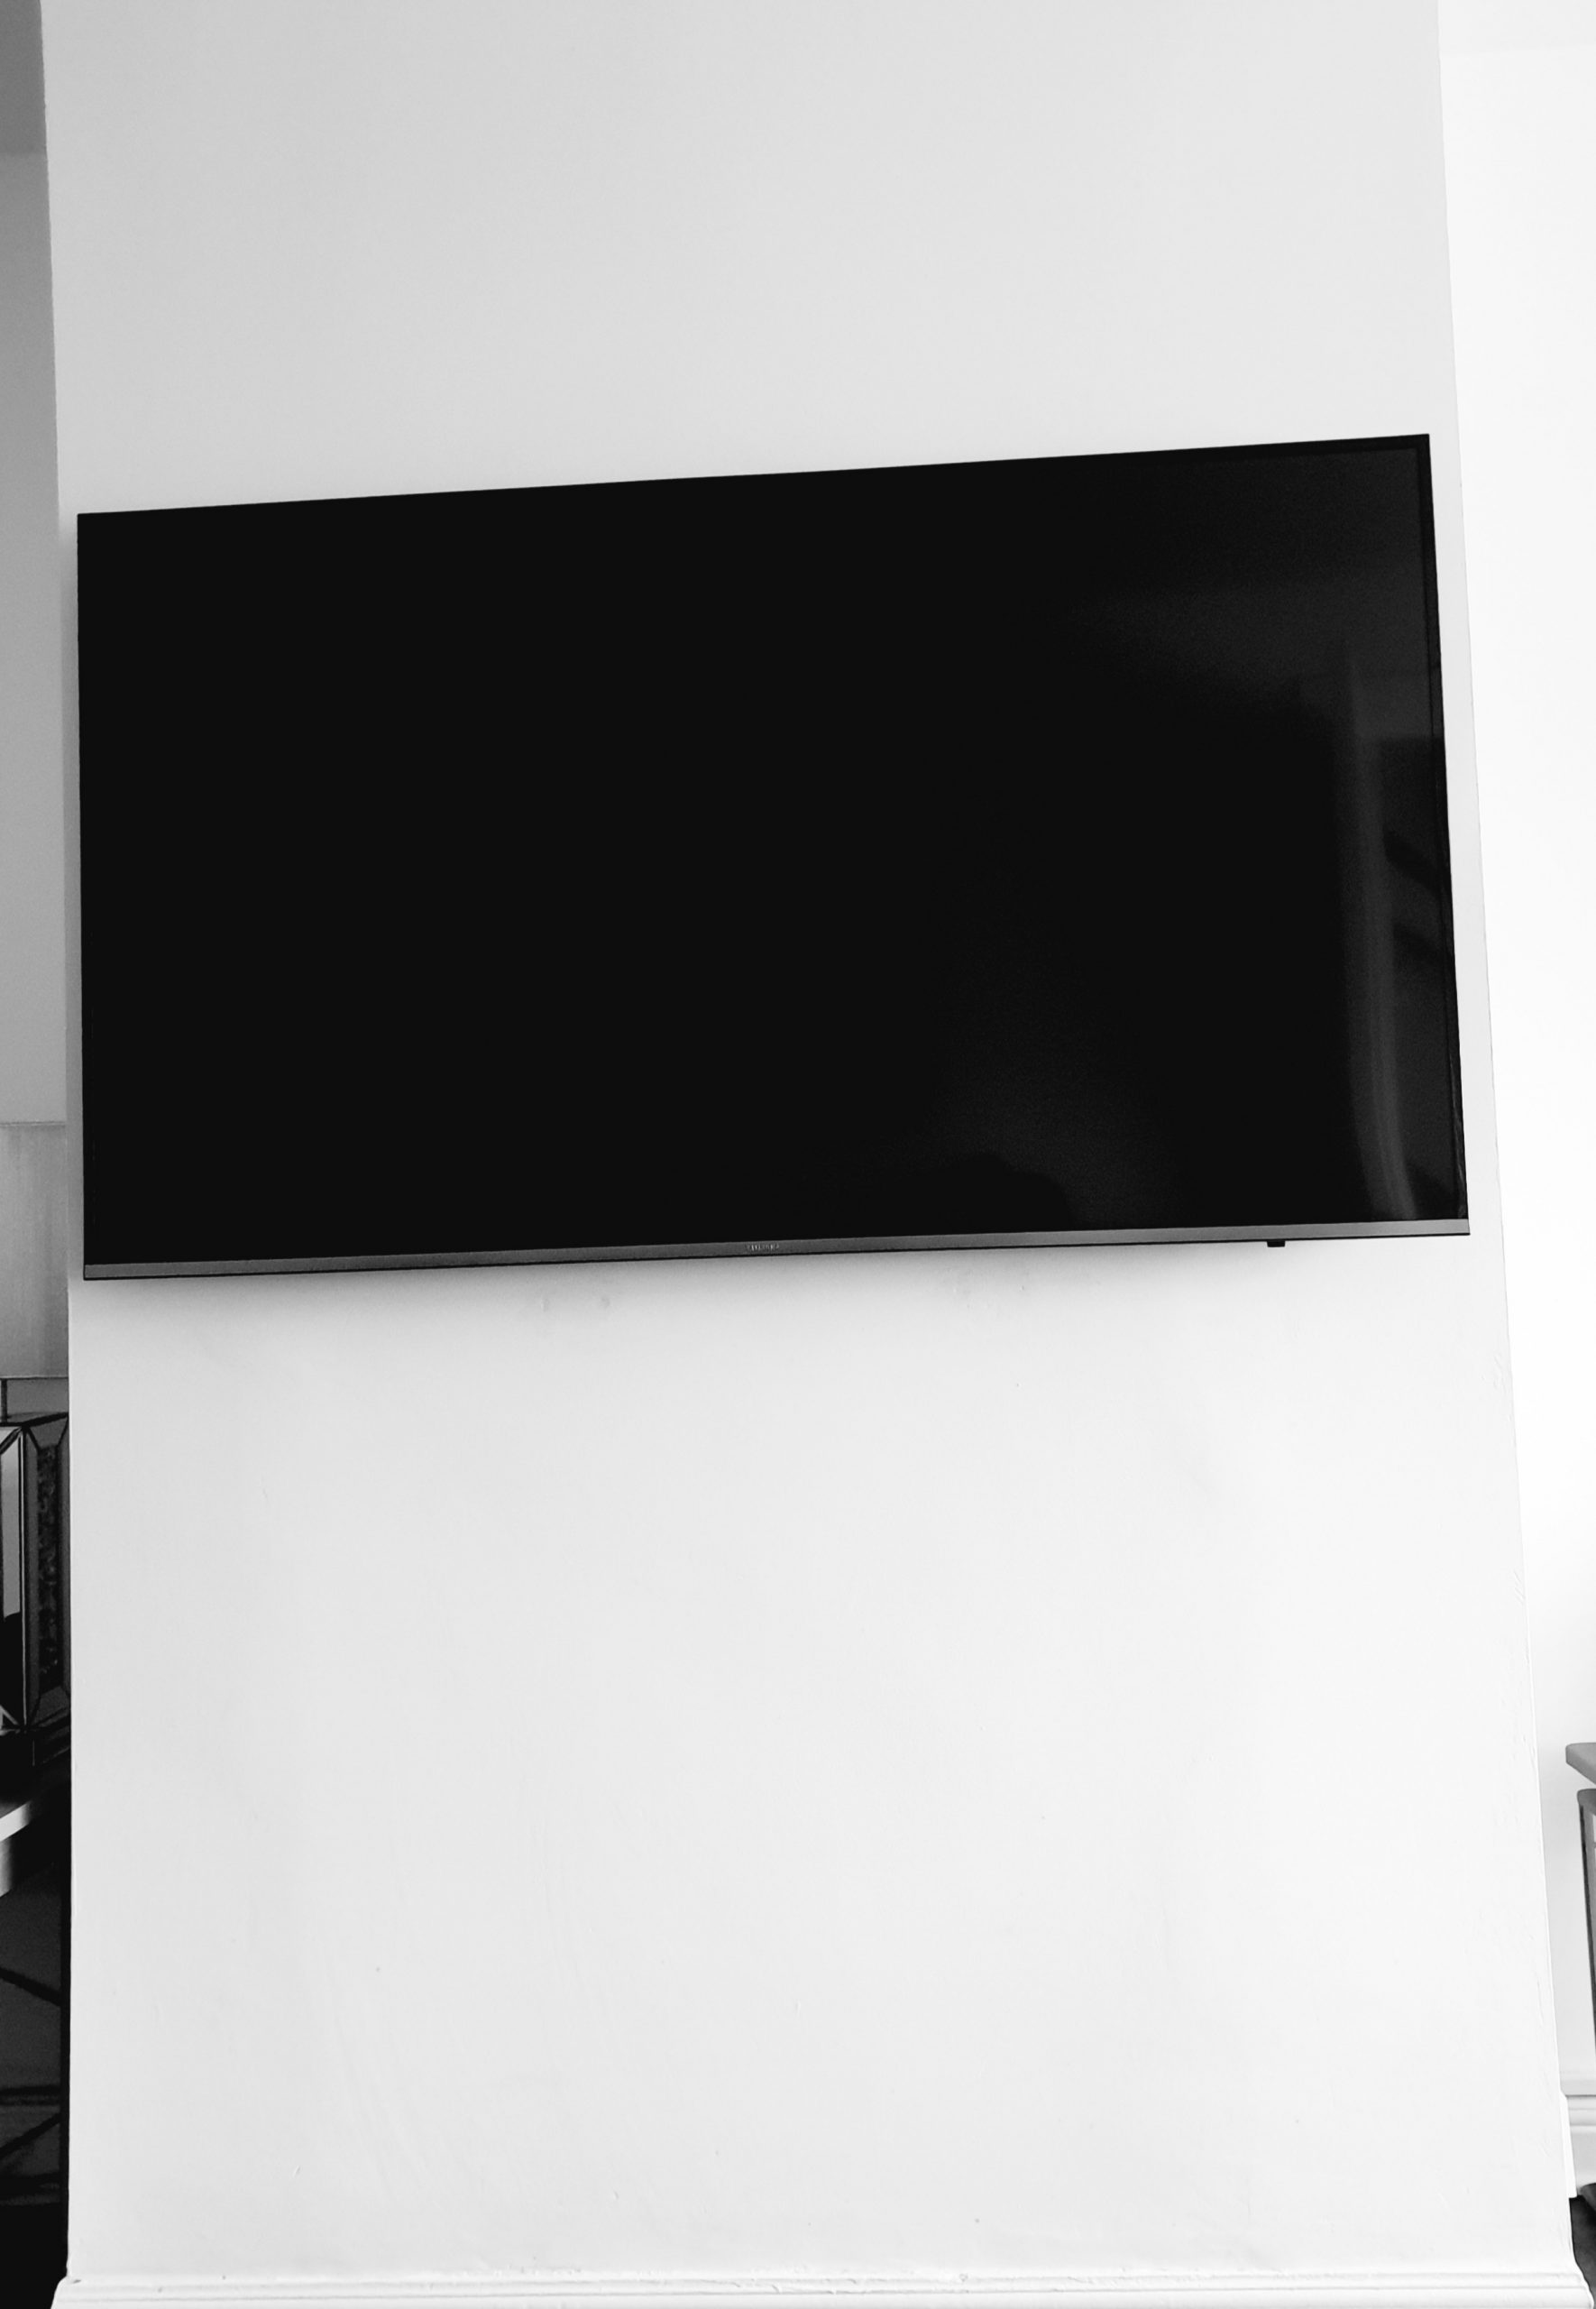 FreeSat Satellite installed on side of wall with cabling